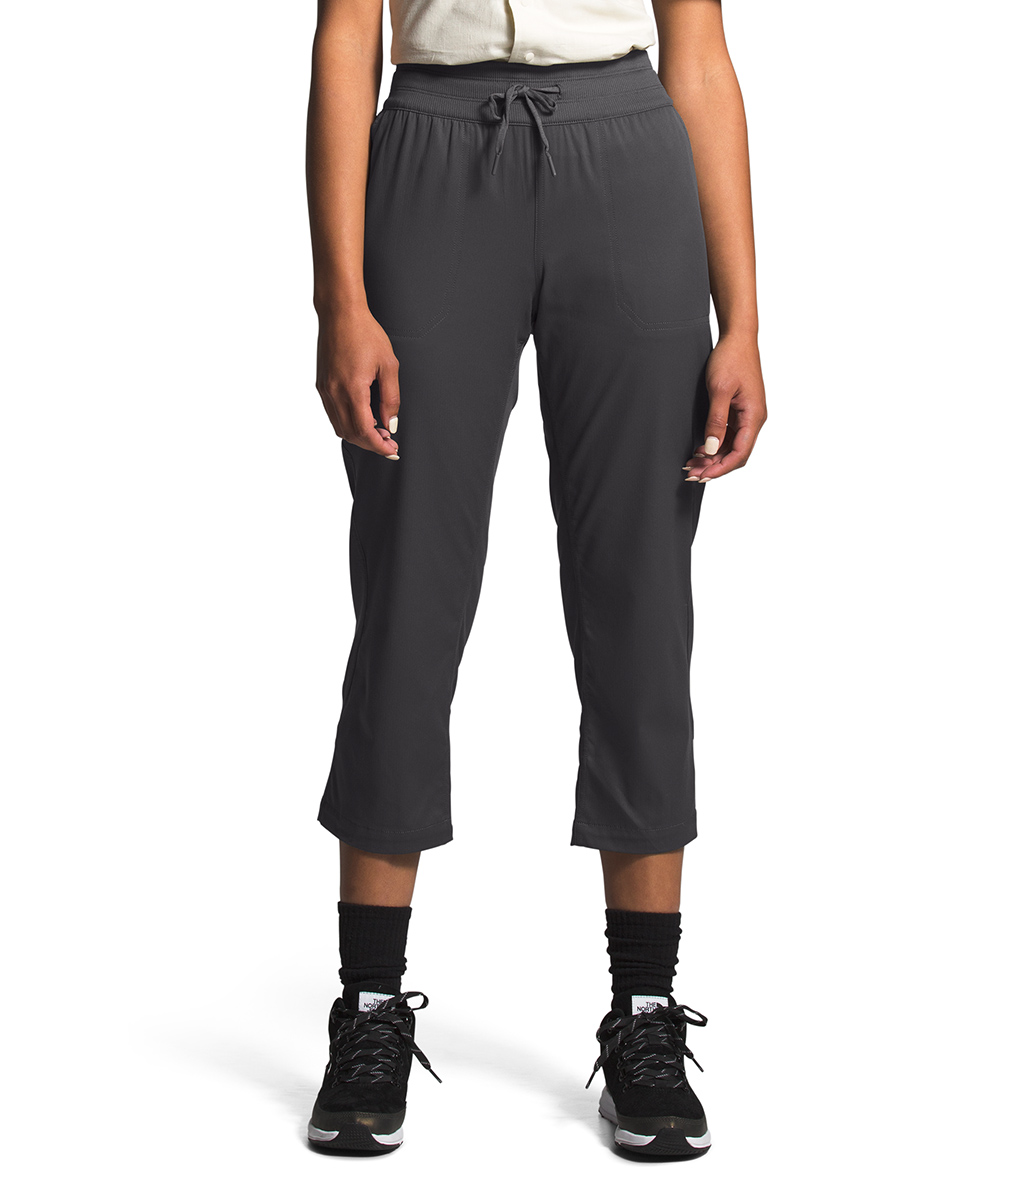 The North Face Wome's Aphrodite Motion Capri NF0A4AQE SX